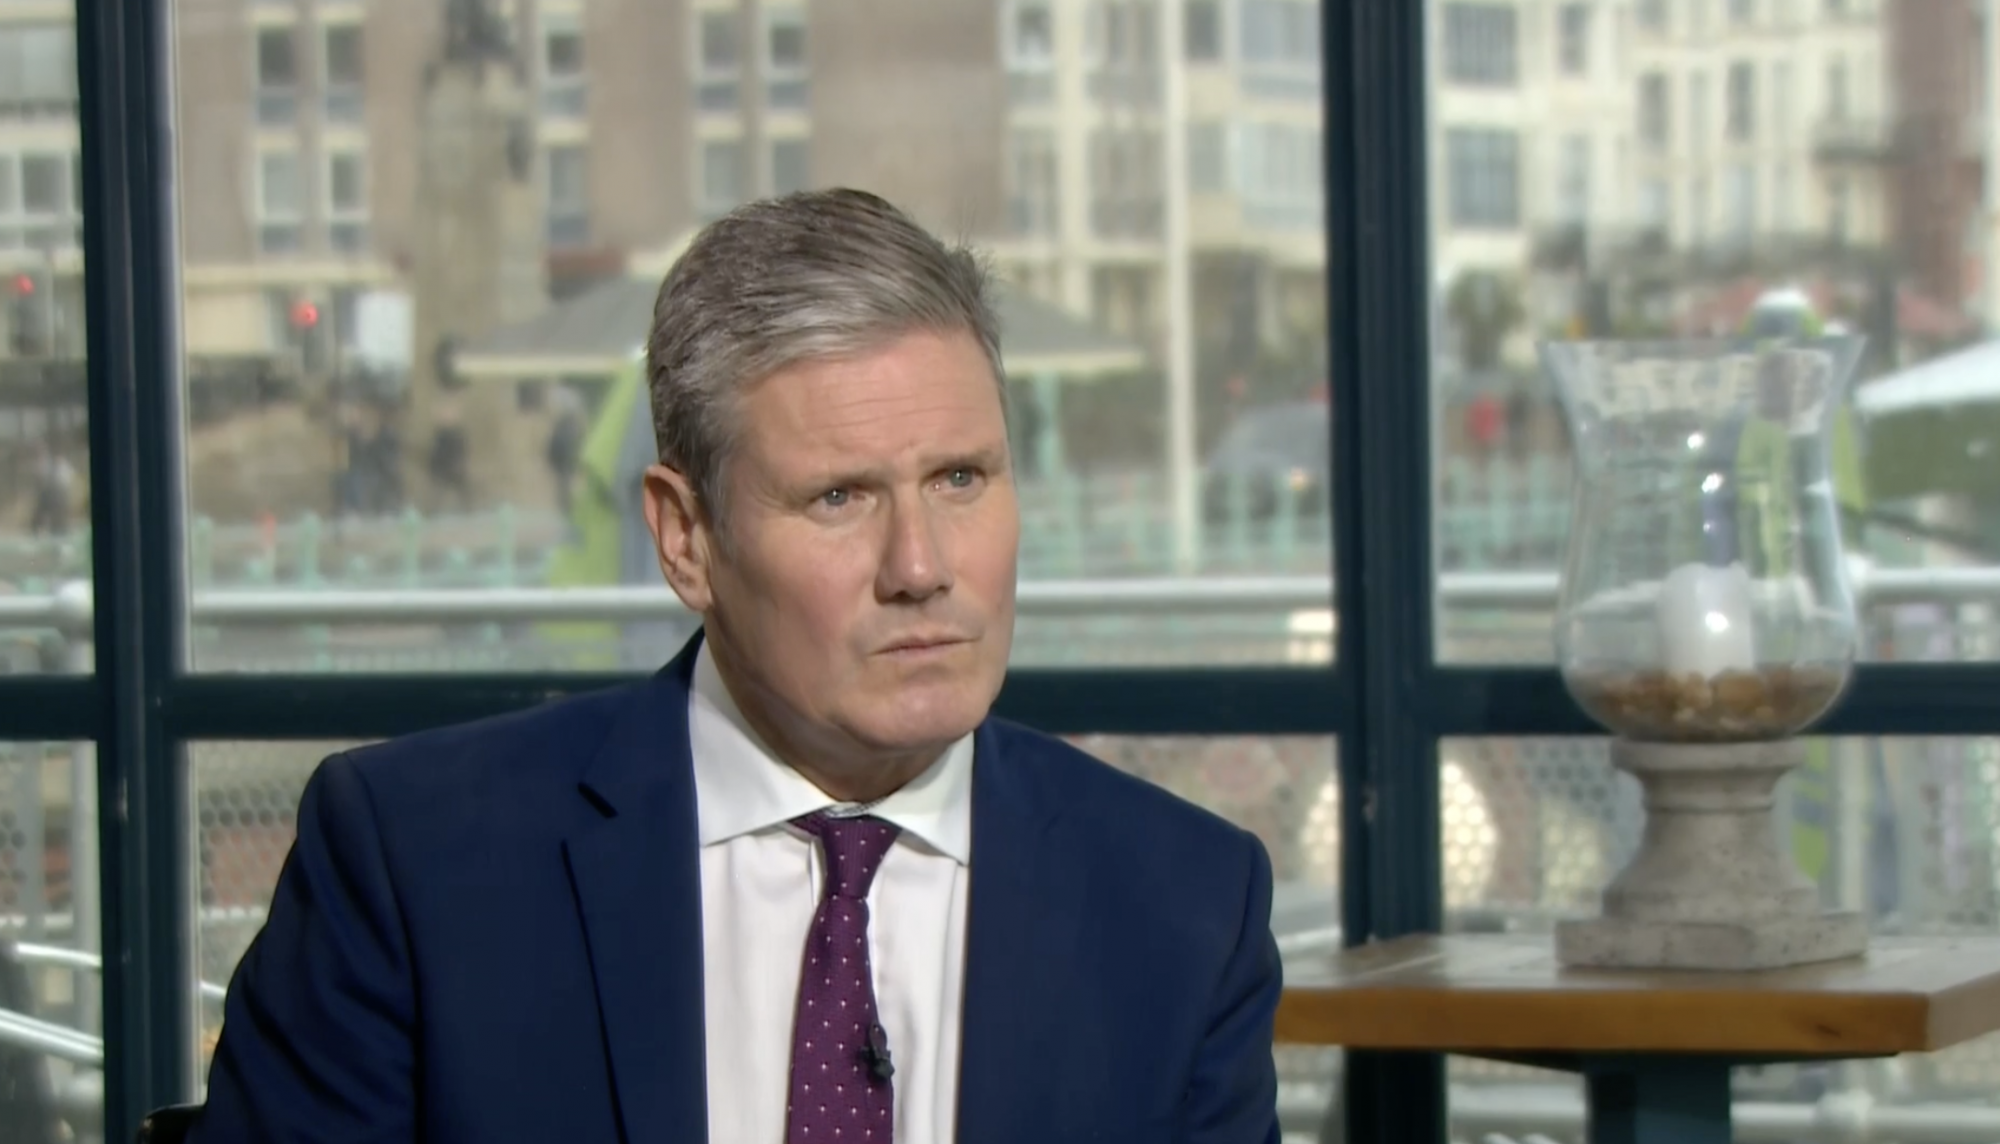 Starmer defends Labour rule changes amid party divisions - channel 4